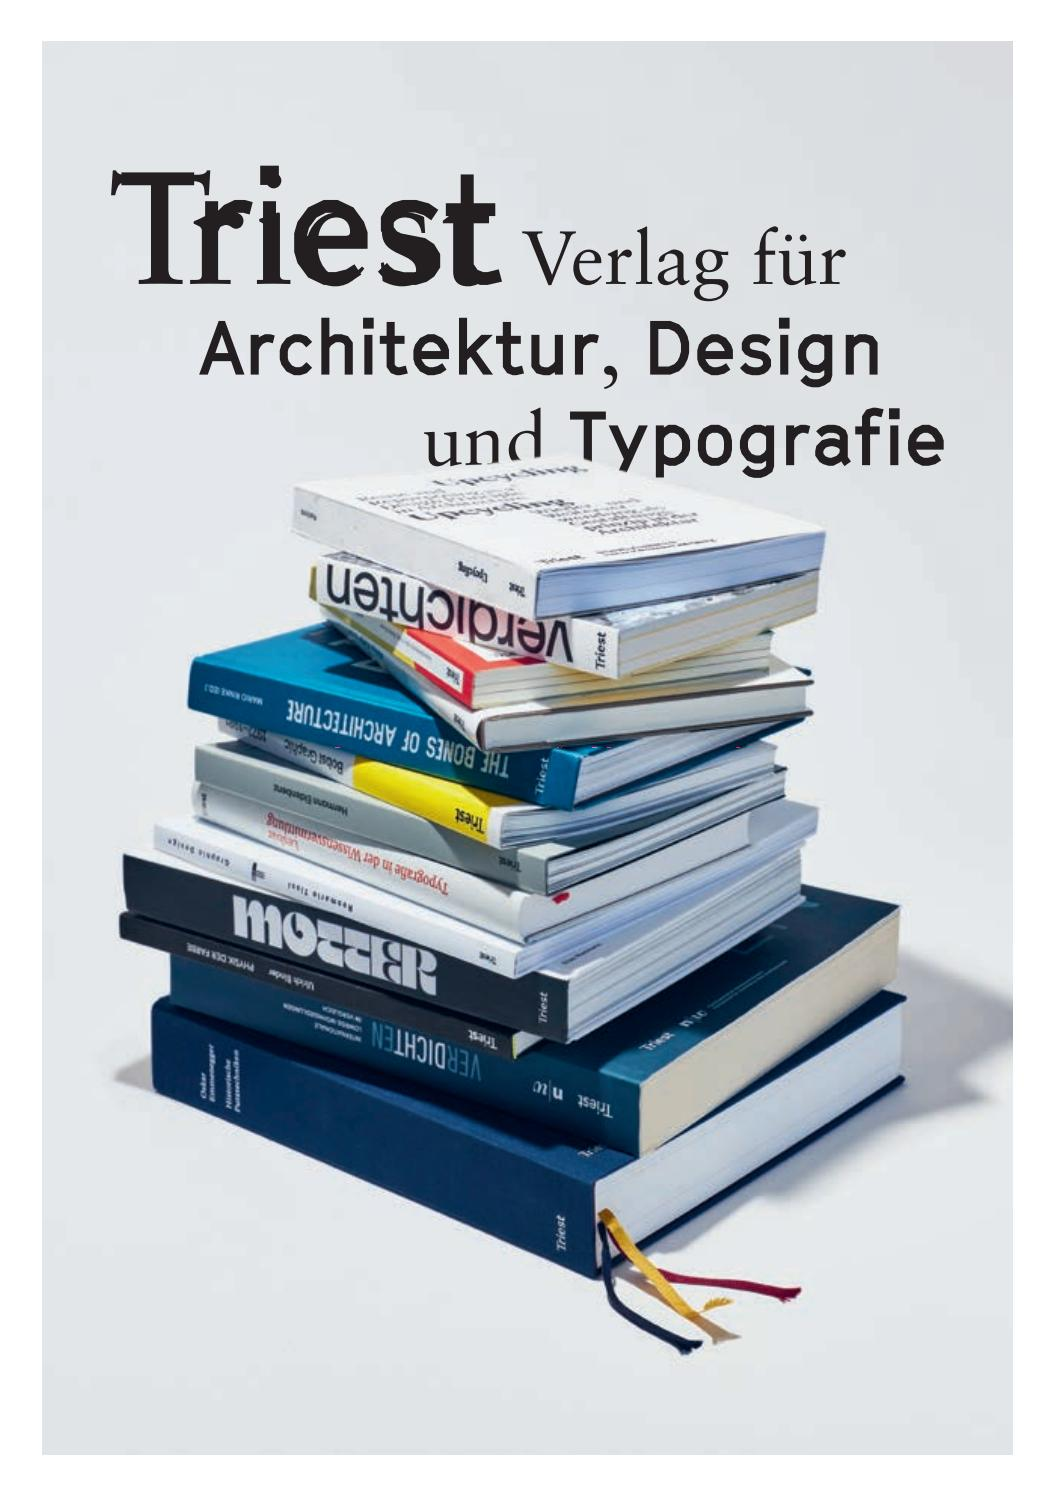 Verlagskatalog By Triest Verlag Issuu